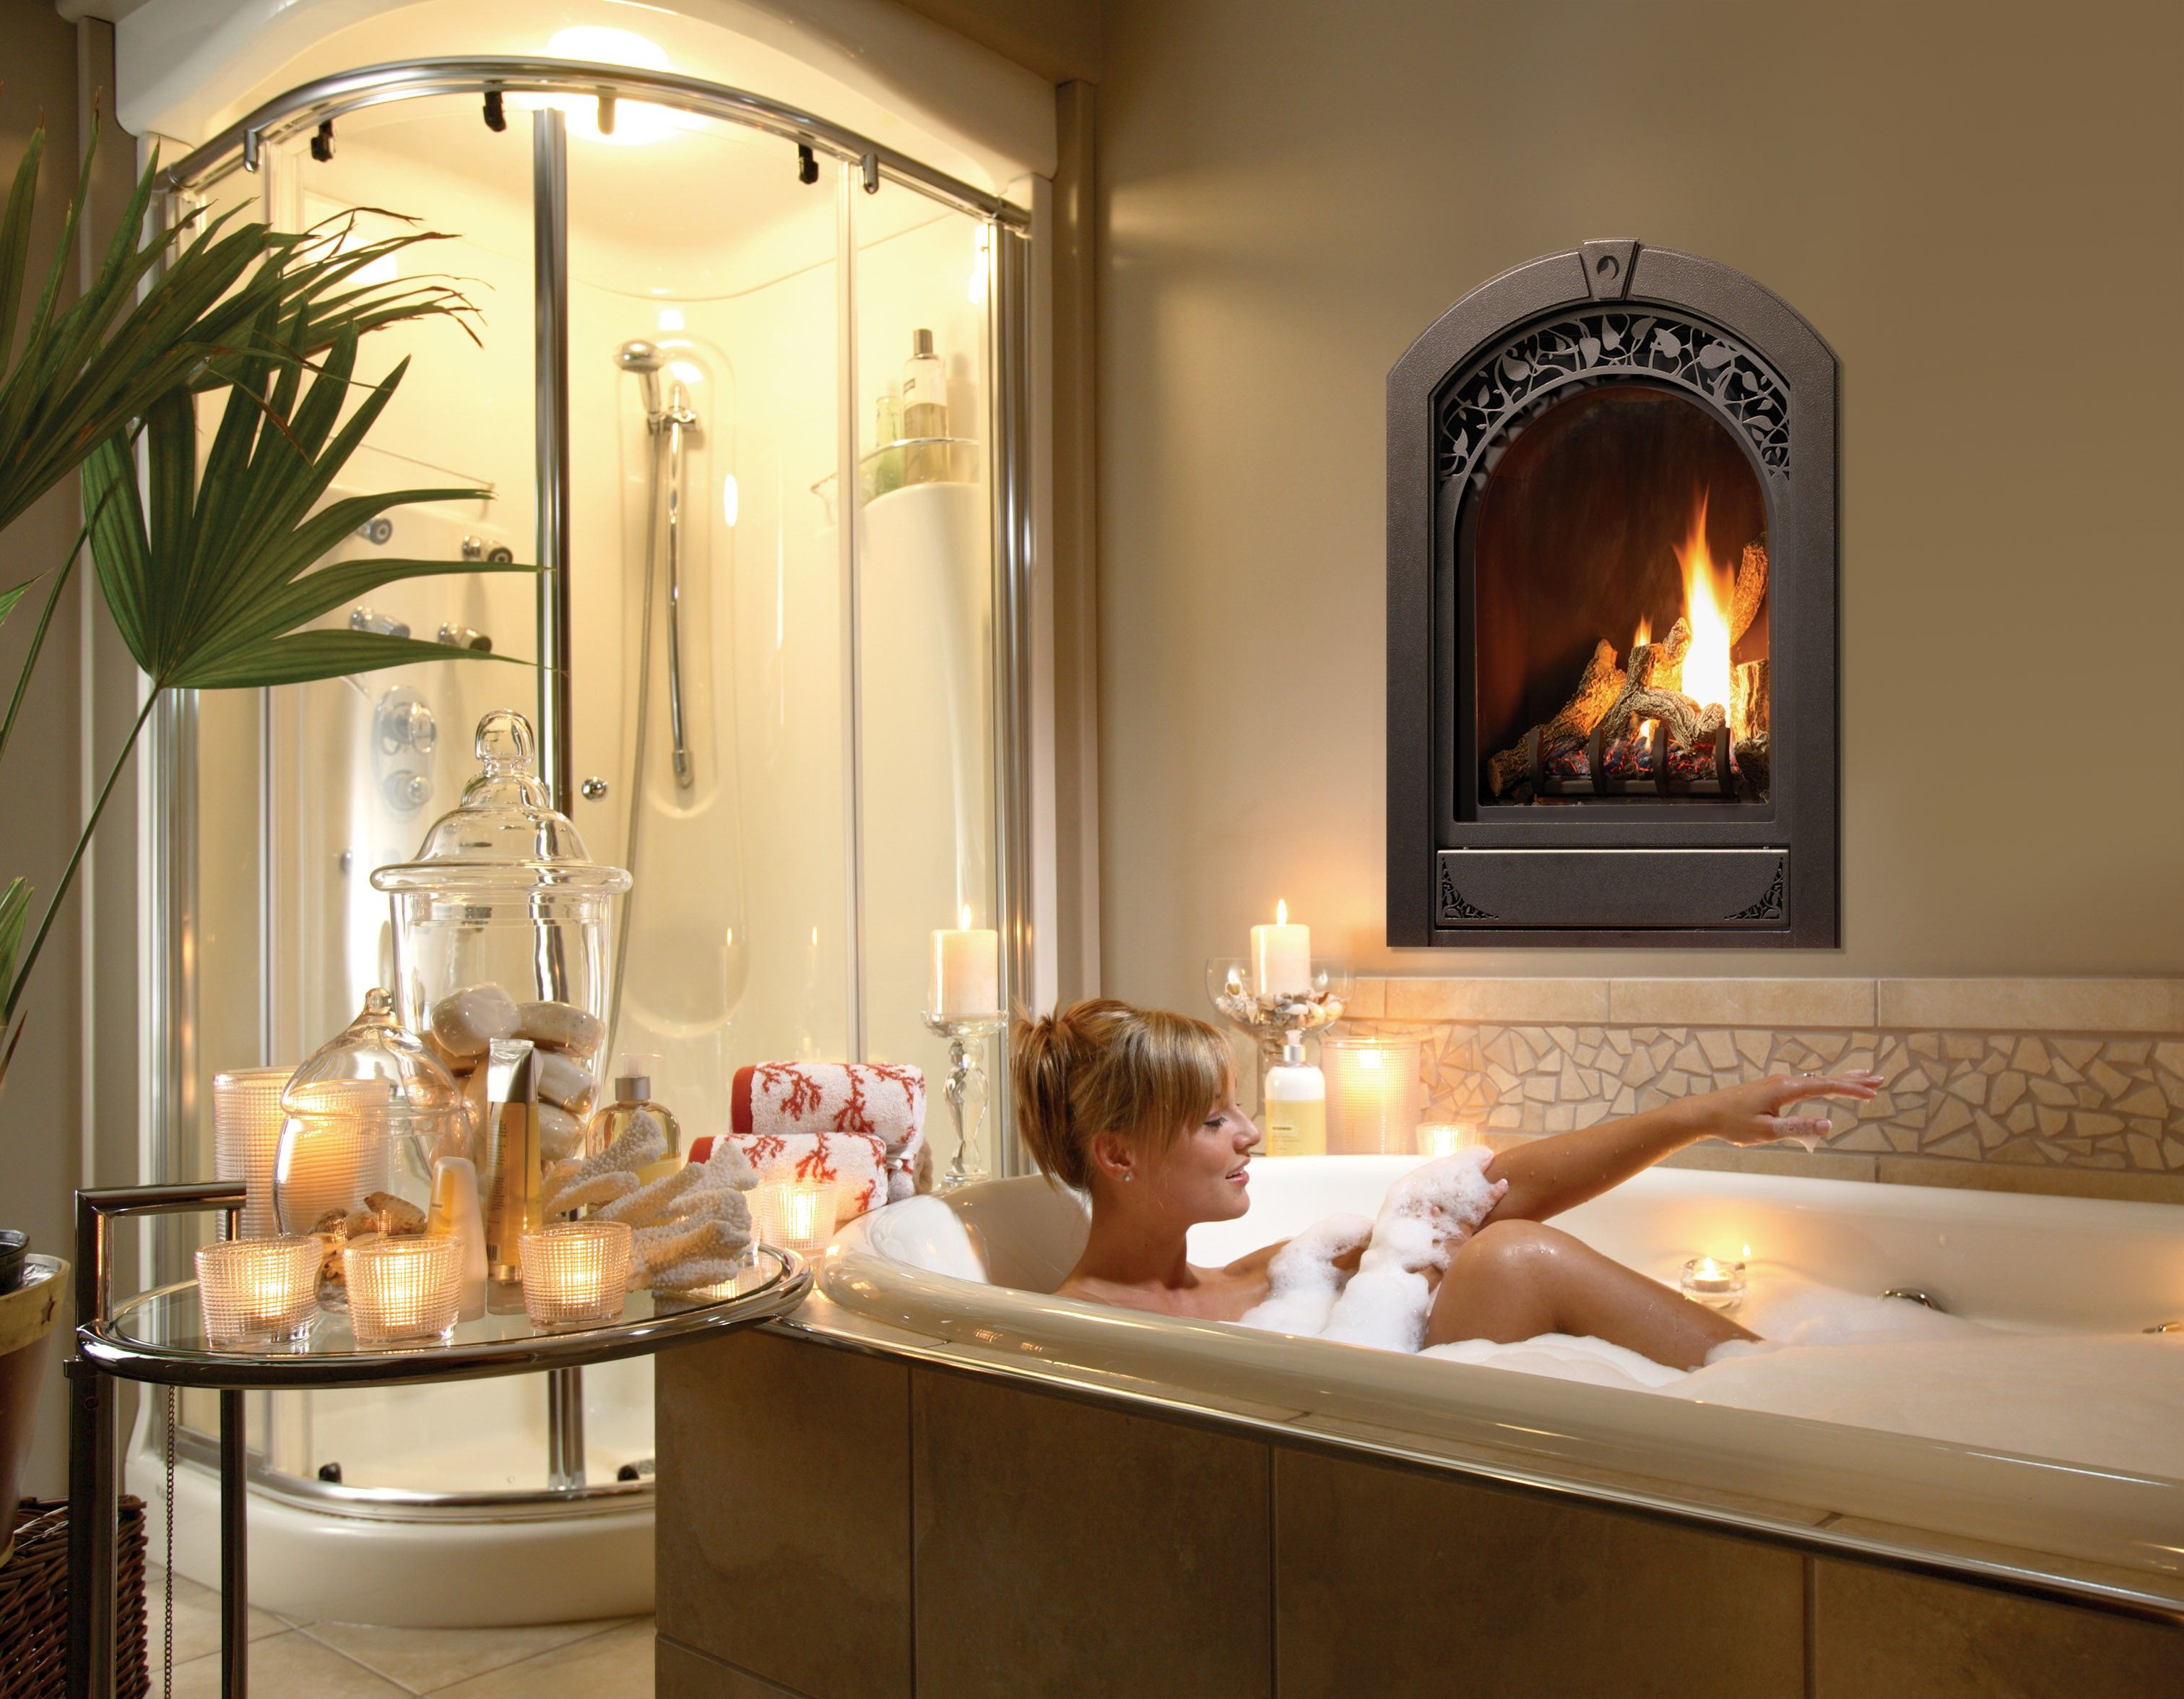 Marquis Serenity Gas Fireplace: The Serenity from Marquis features a ...